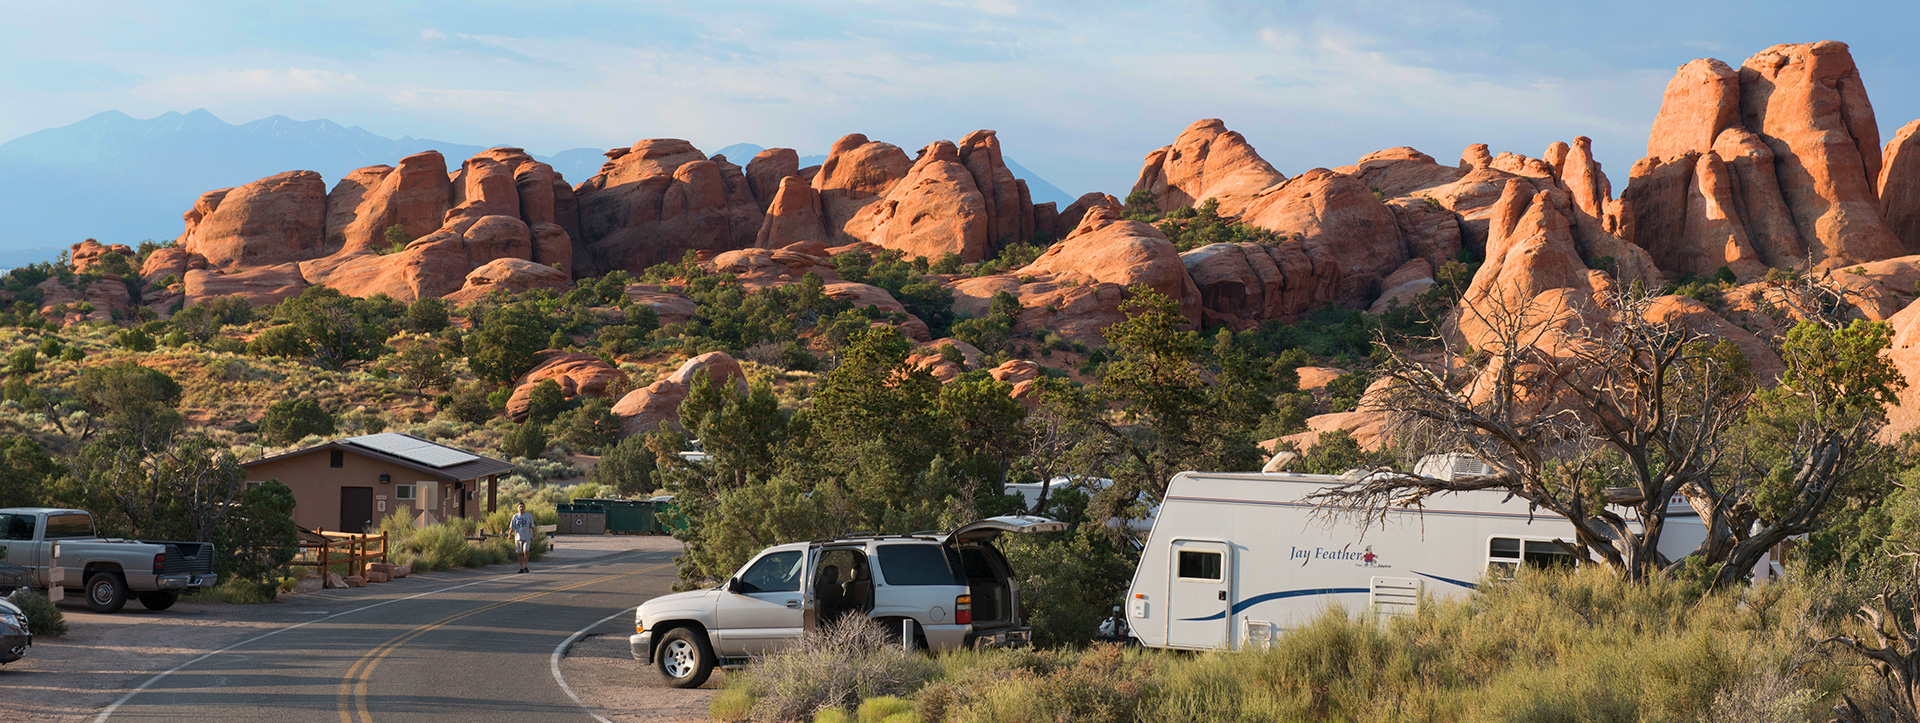 Getting to Know Your Next Camping Activity on Public Lands